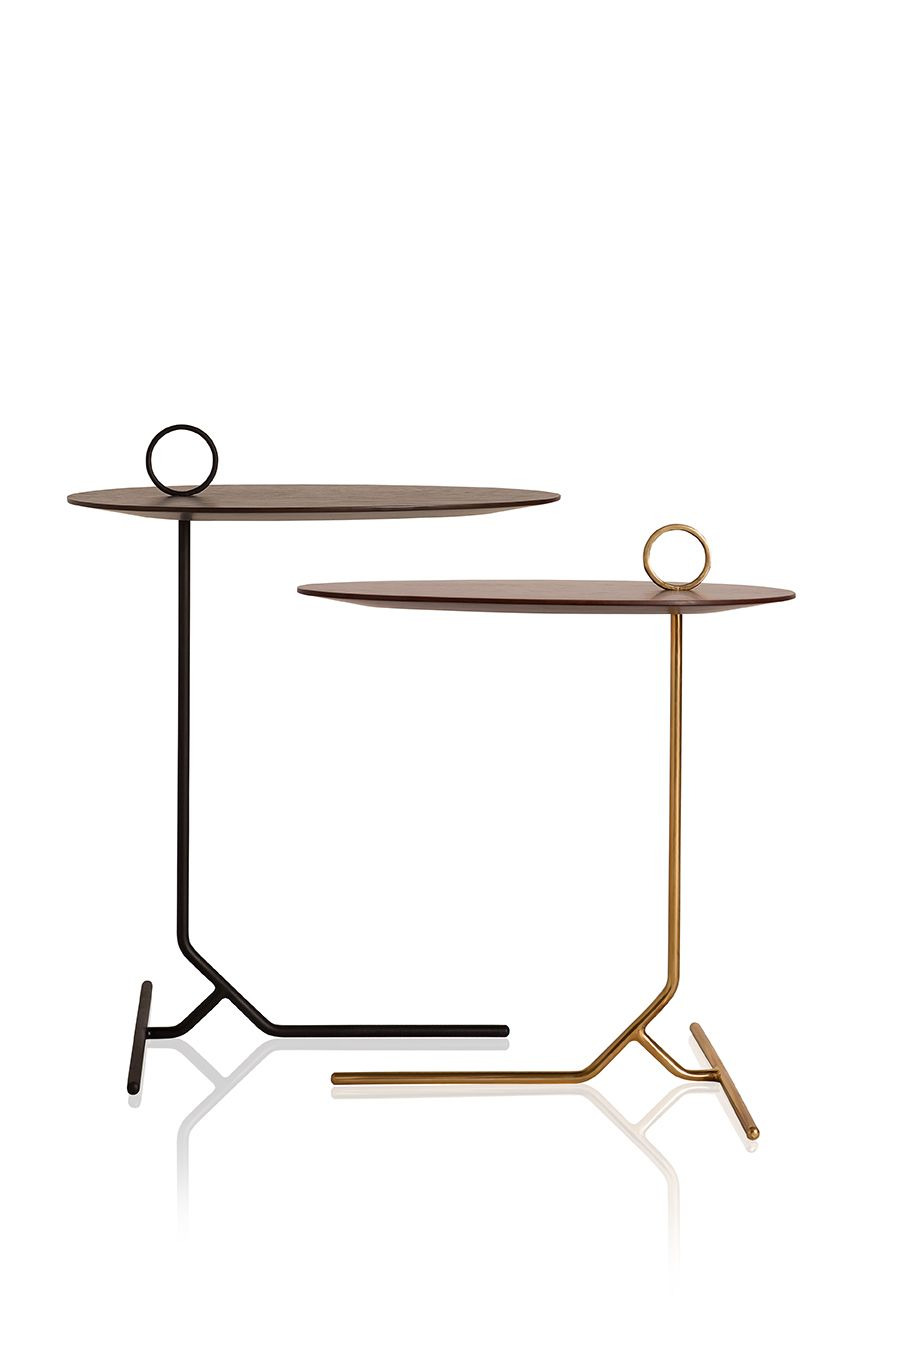 Mdf Table top Finish Beautiful Dimension 35x51x50 55 Material Carbon Frame with Brass